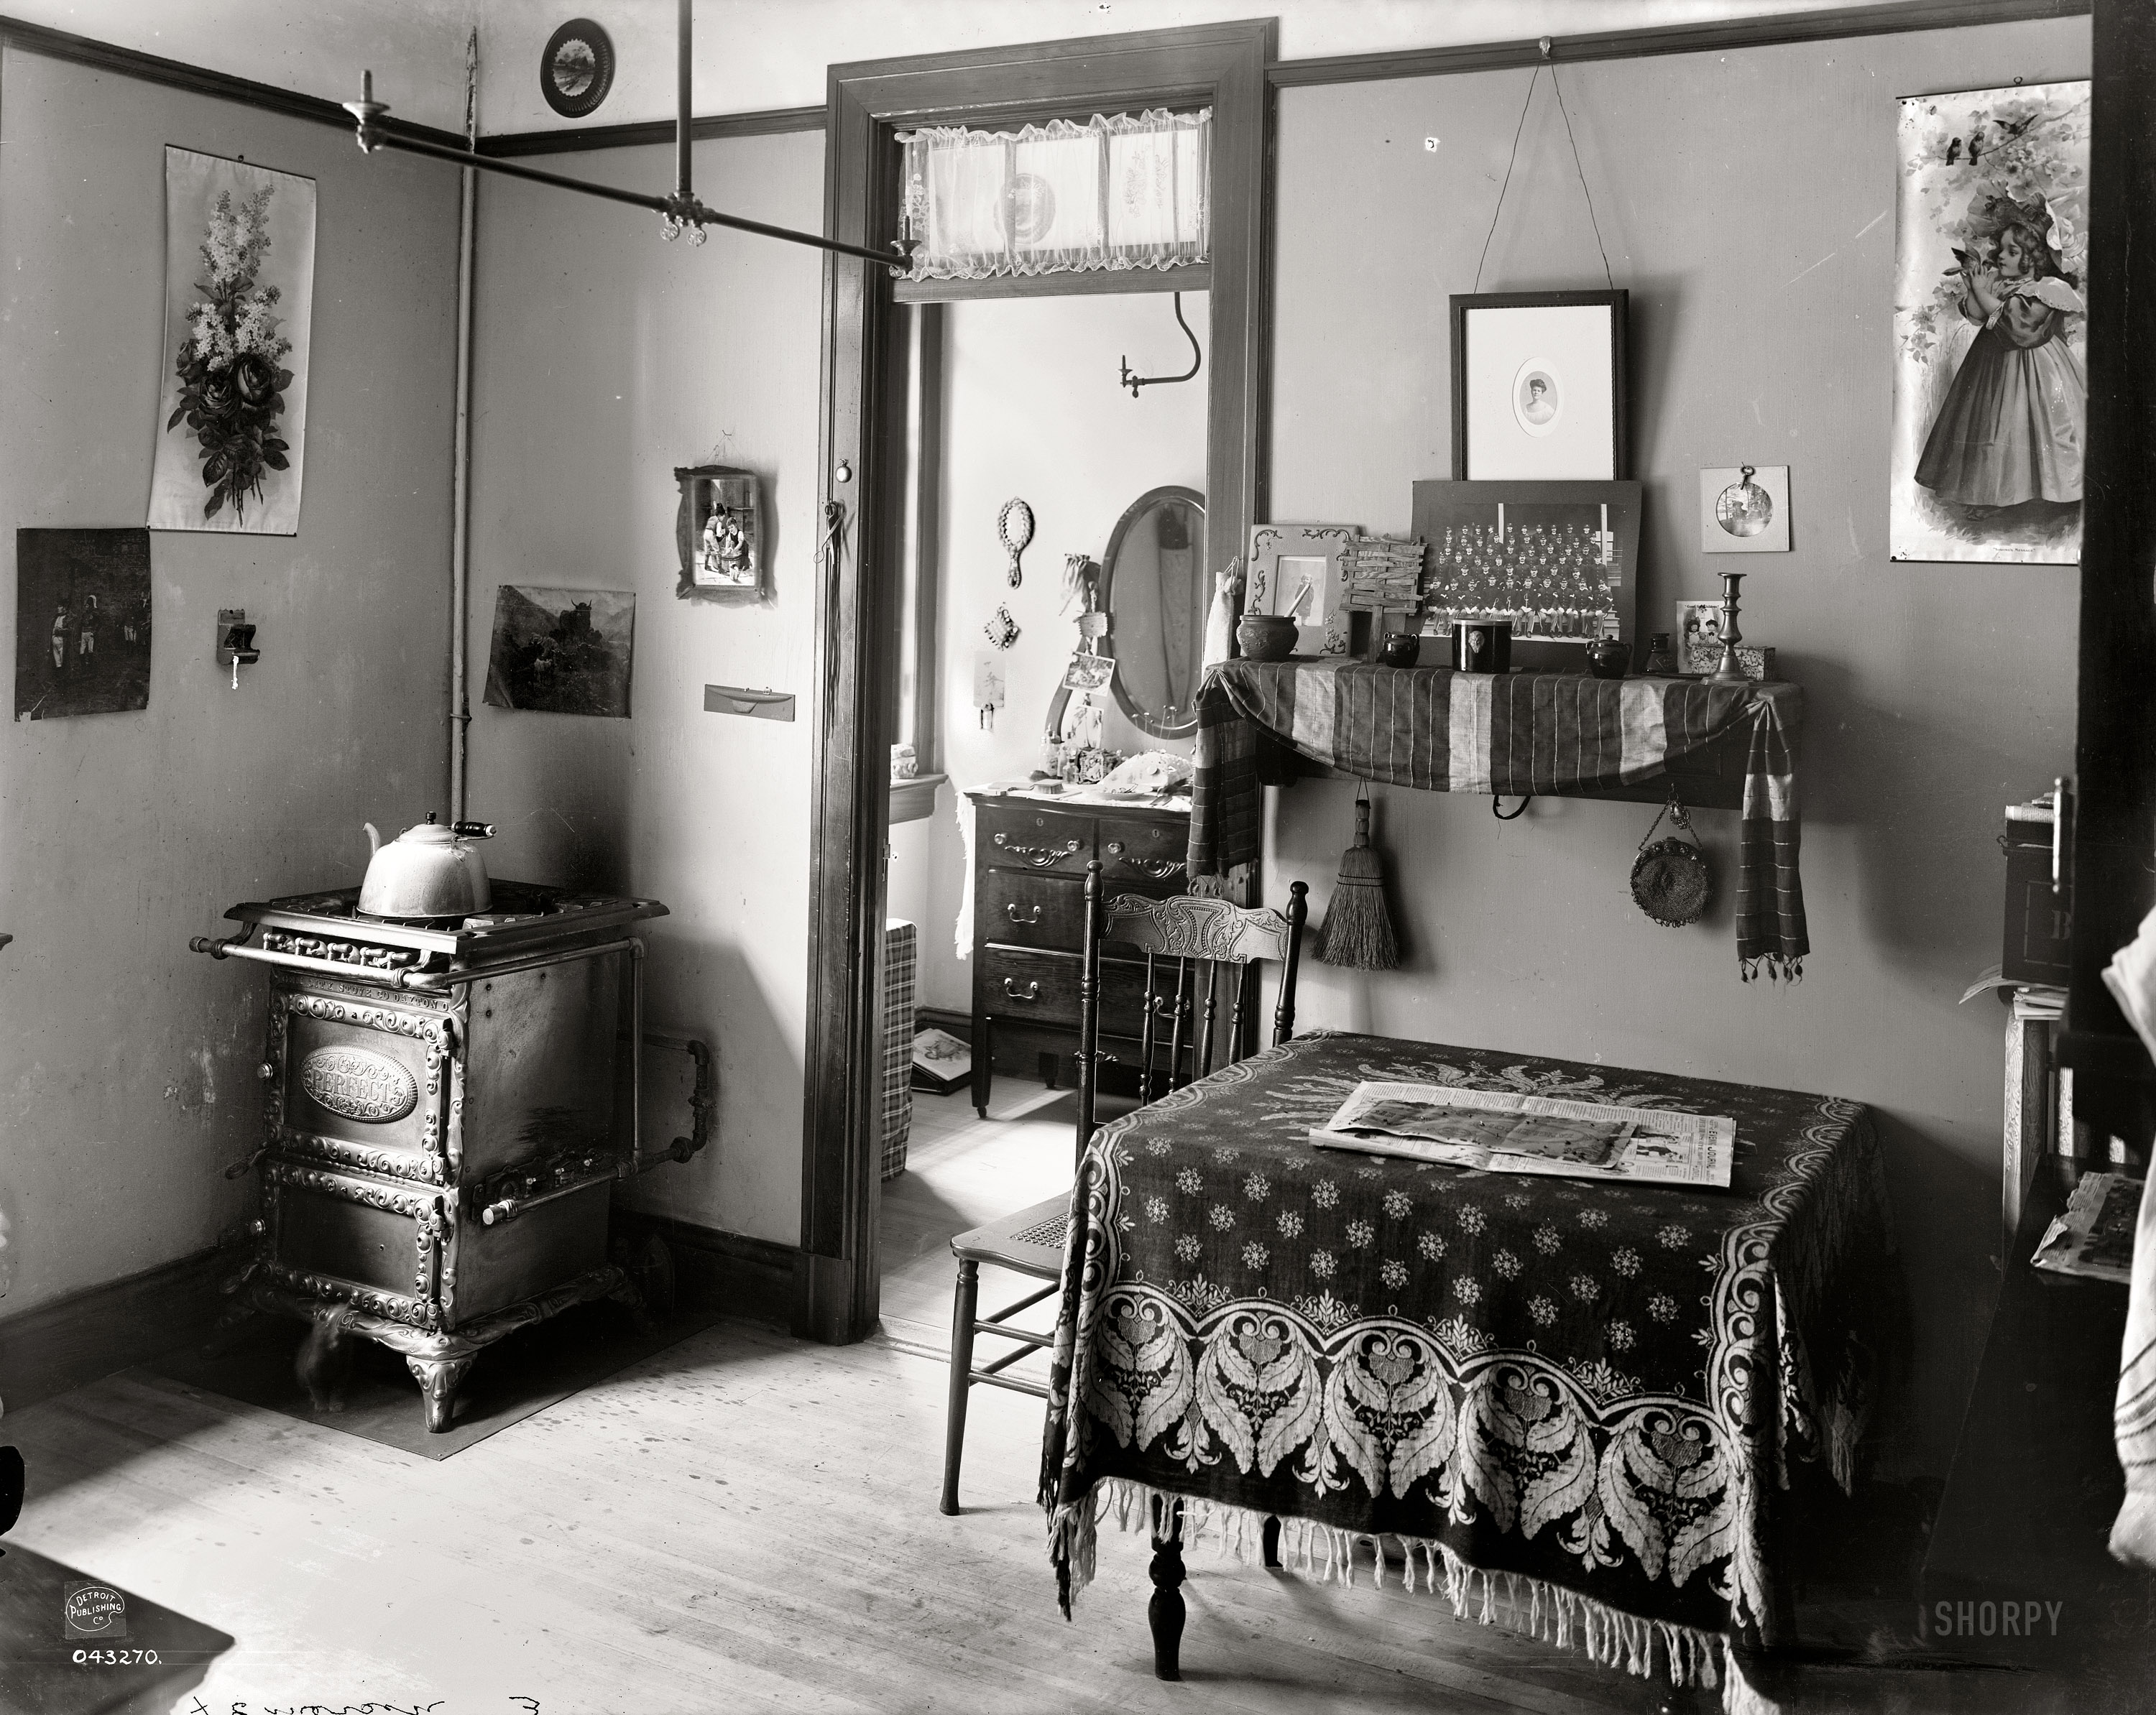 Shorpy historic picture archive the tenement 1905 high resolution photo for New york life building interior